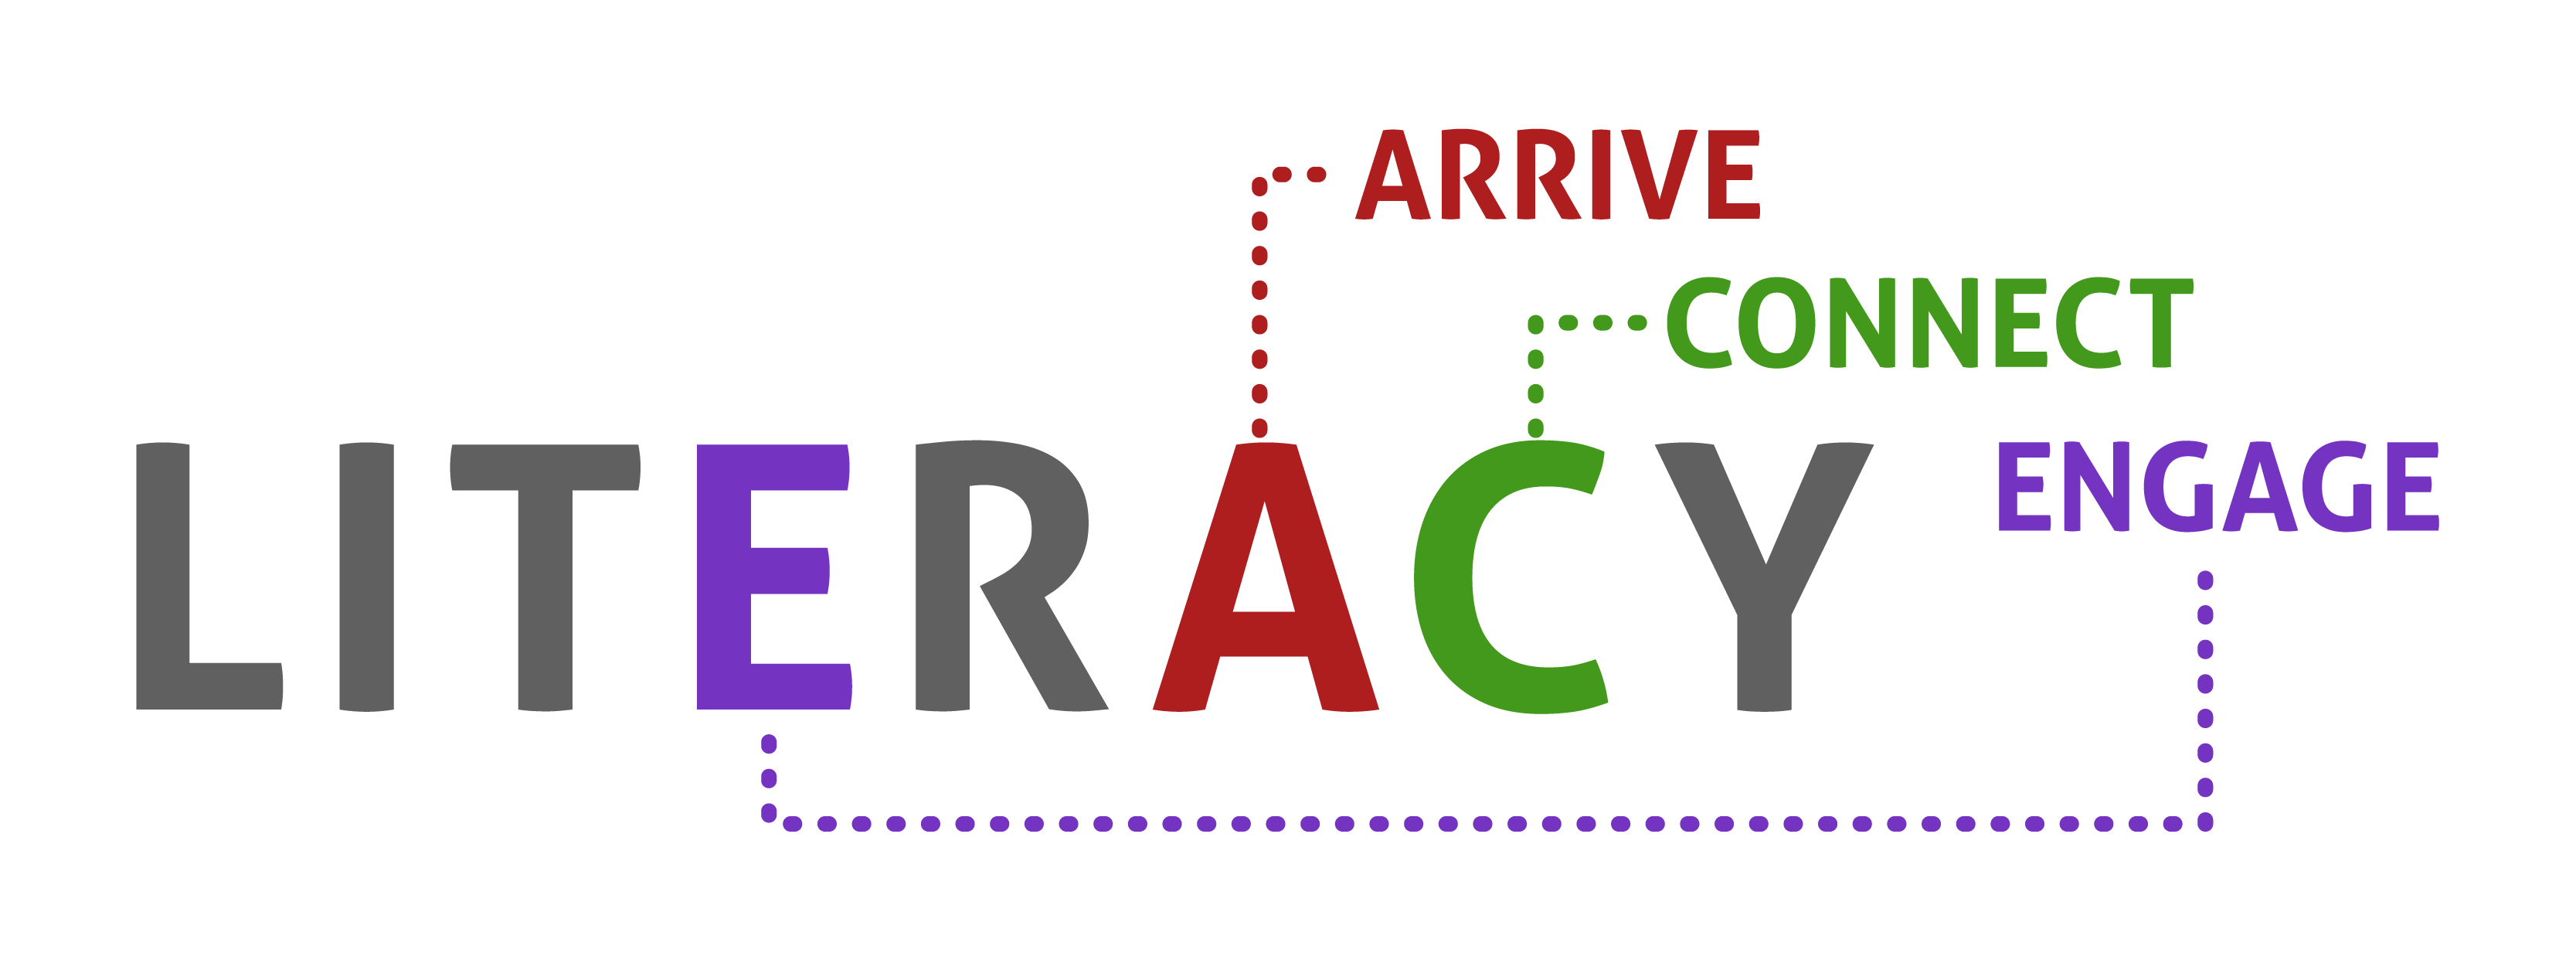 A-C-E: Three Things I Learned While Teaching Literacy